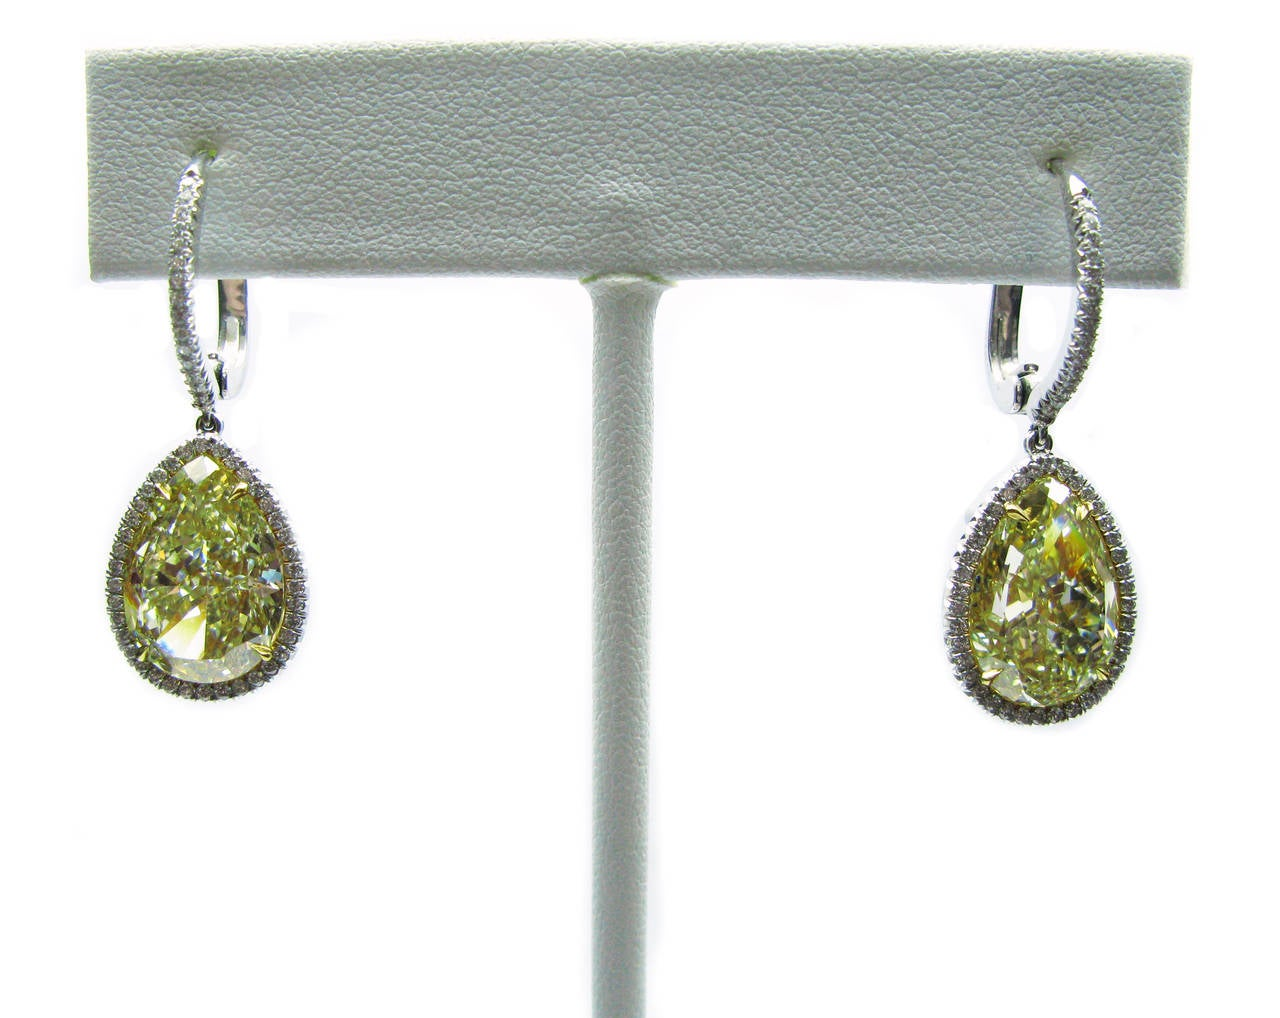 12.75 Carat GIA Cert Fancy Yellow Pear Diamond Leverback Earrings 6